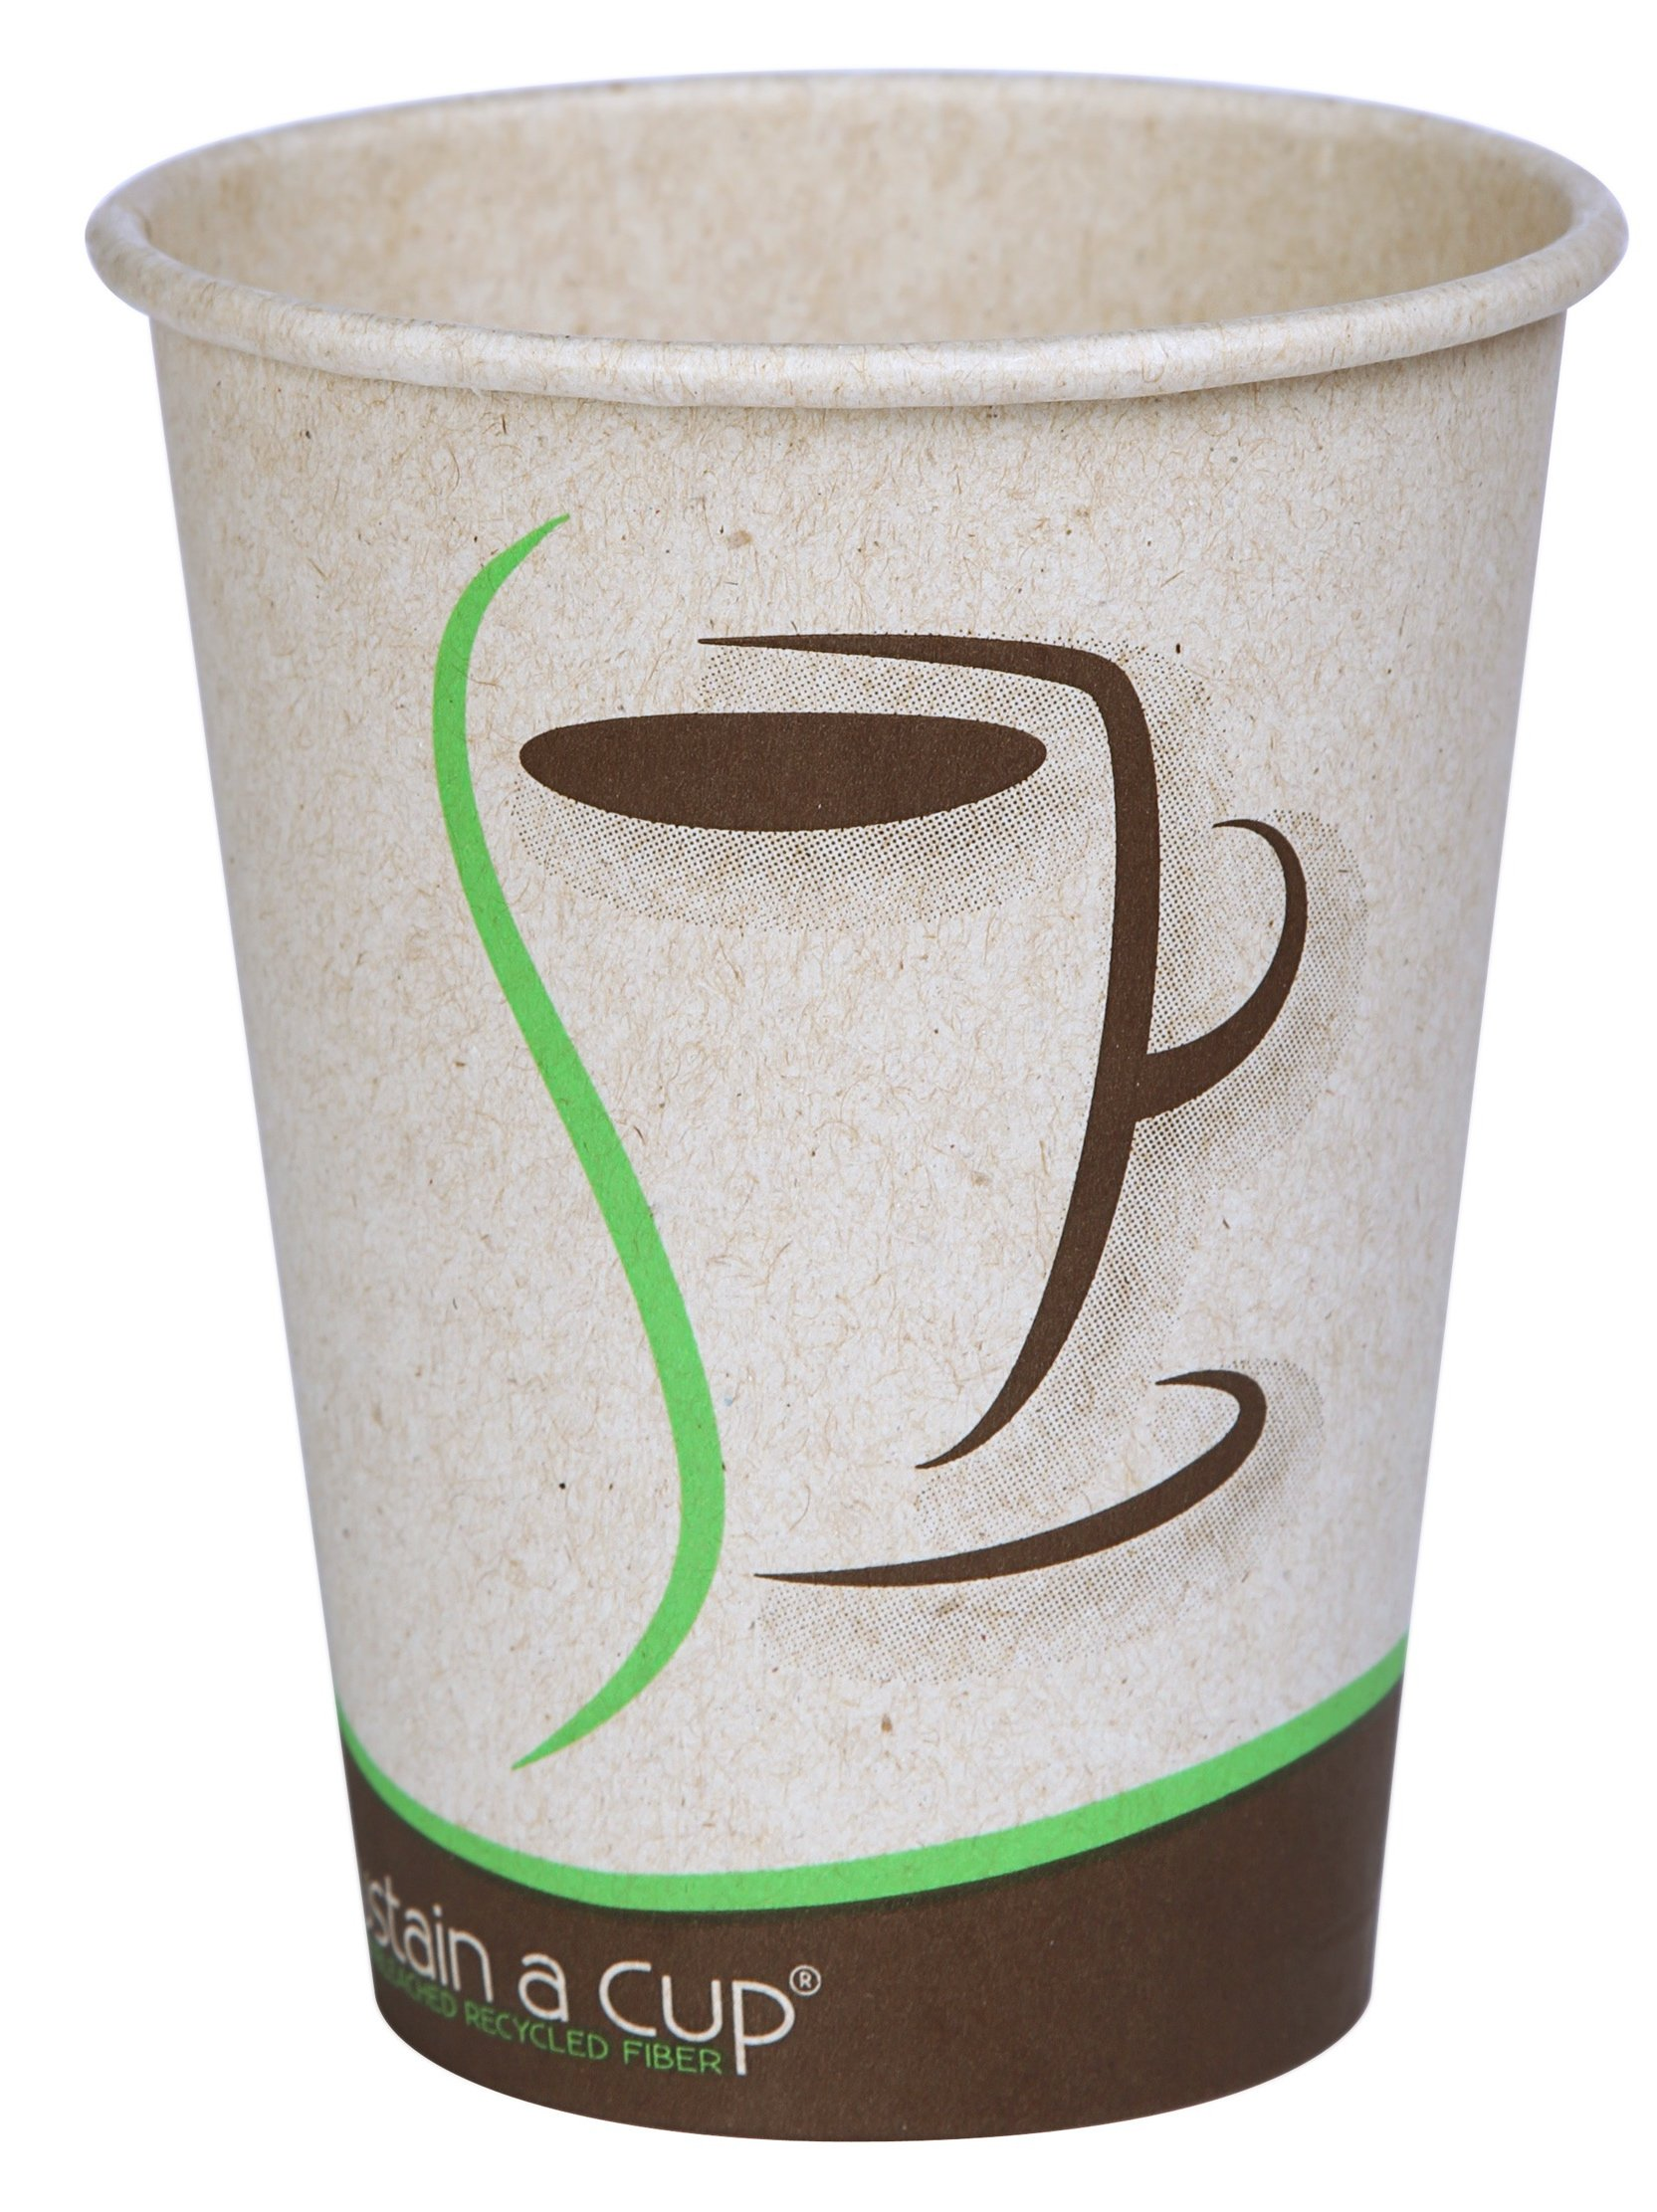 Moducup Sustain-A-Cup 16H -S2 Paper Hot Cup, Natural, 16 oz Capacity (Pack of 1000)